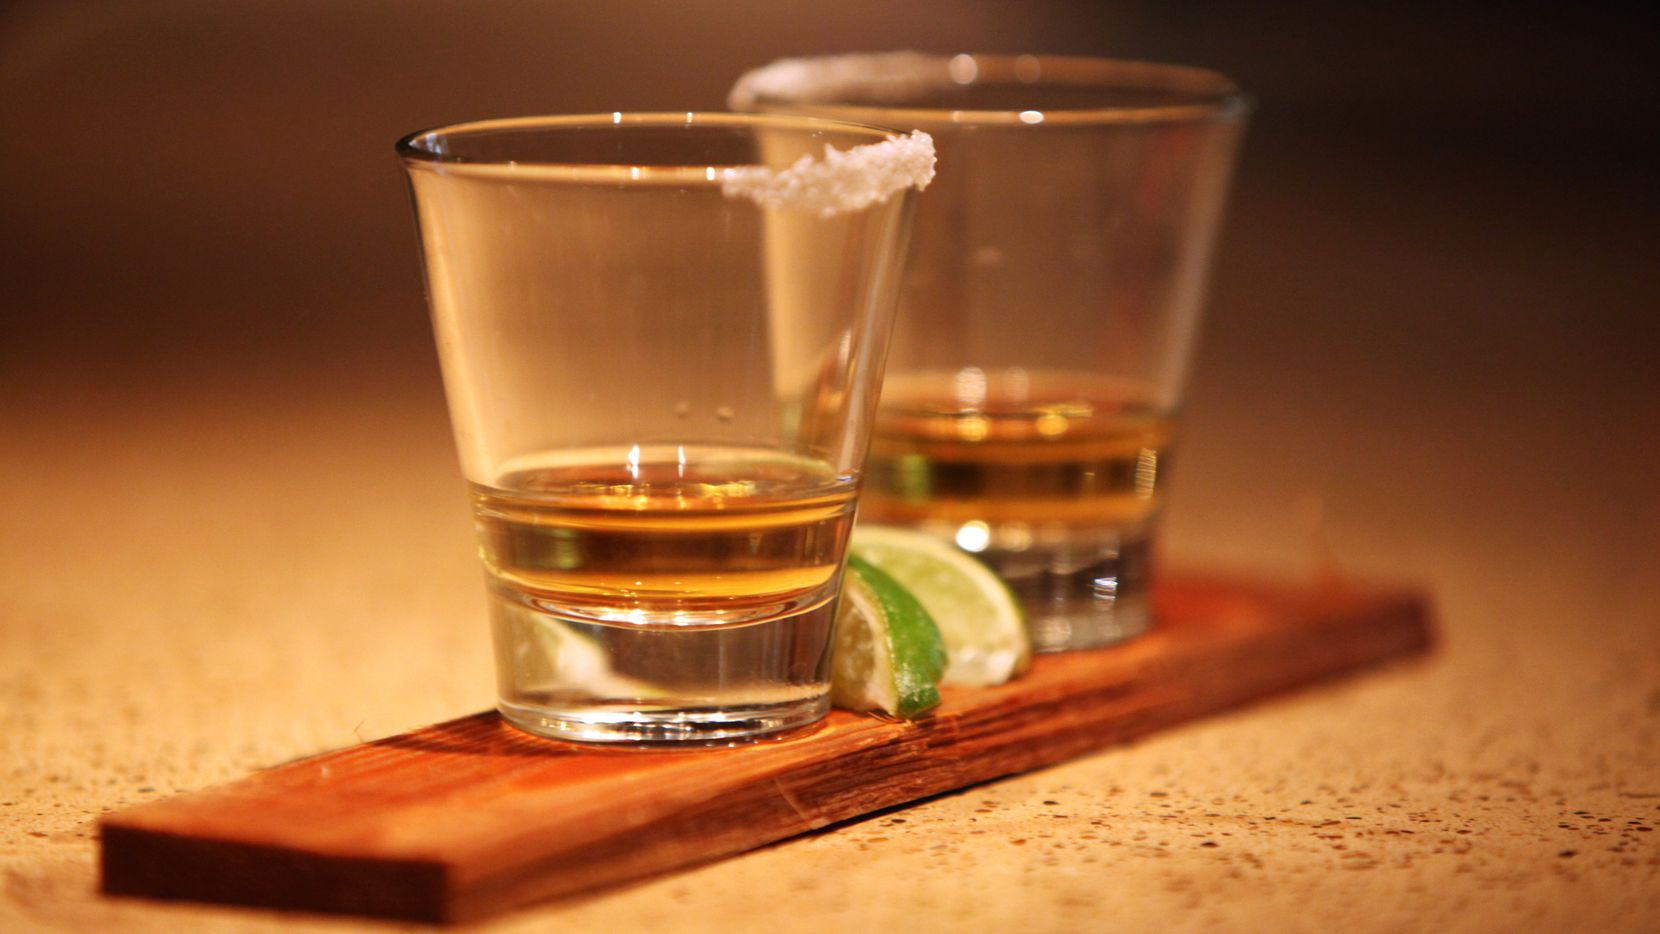 National Tequila Day is celebrated annually on July 24, with tequila shots pictured in this file photo from 2011.